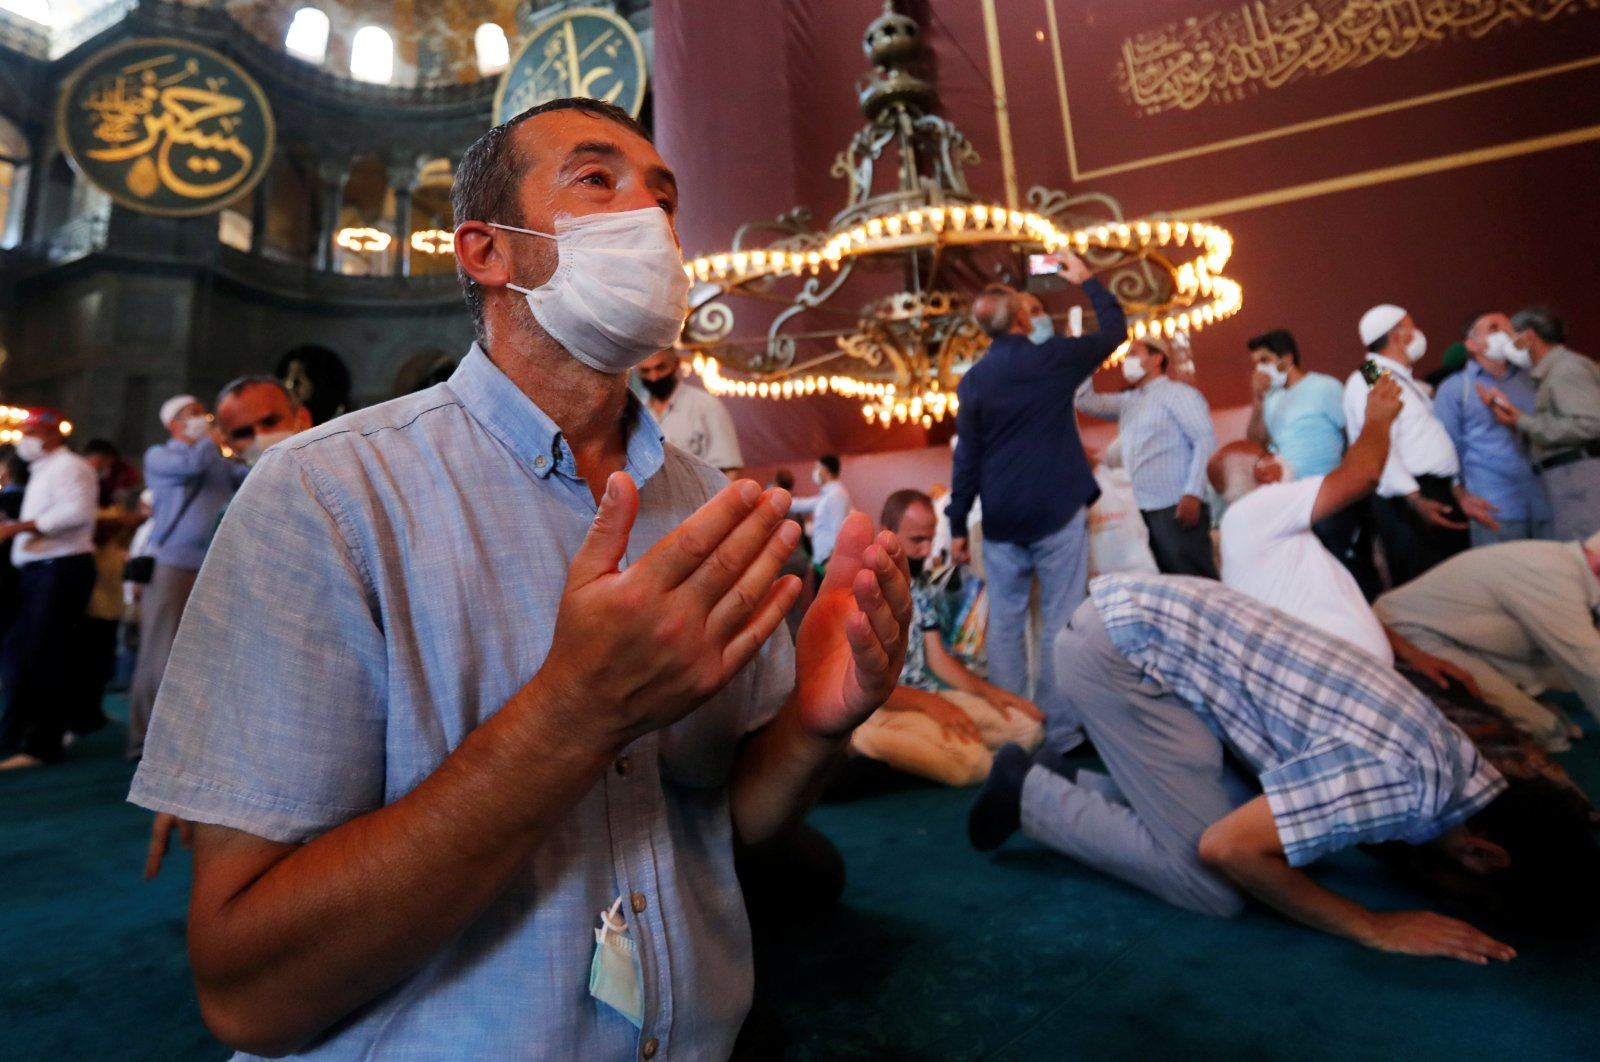 People pray as they visit Hagia Sophia Grand Mosque after Friday prayers, in Istanbul, July 24, 2020. (REUTERS Photo)